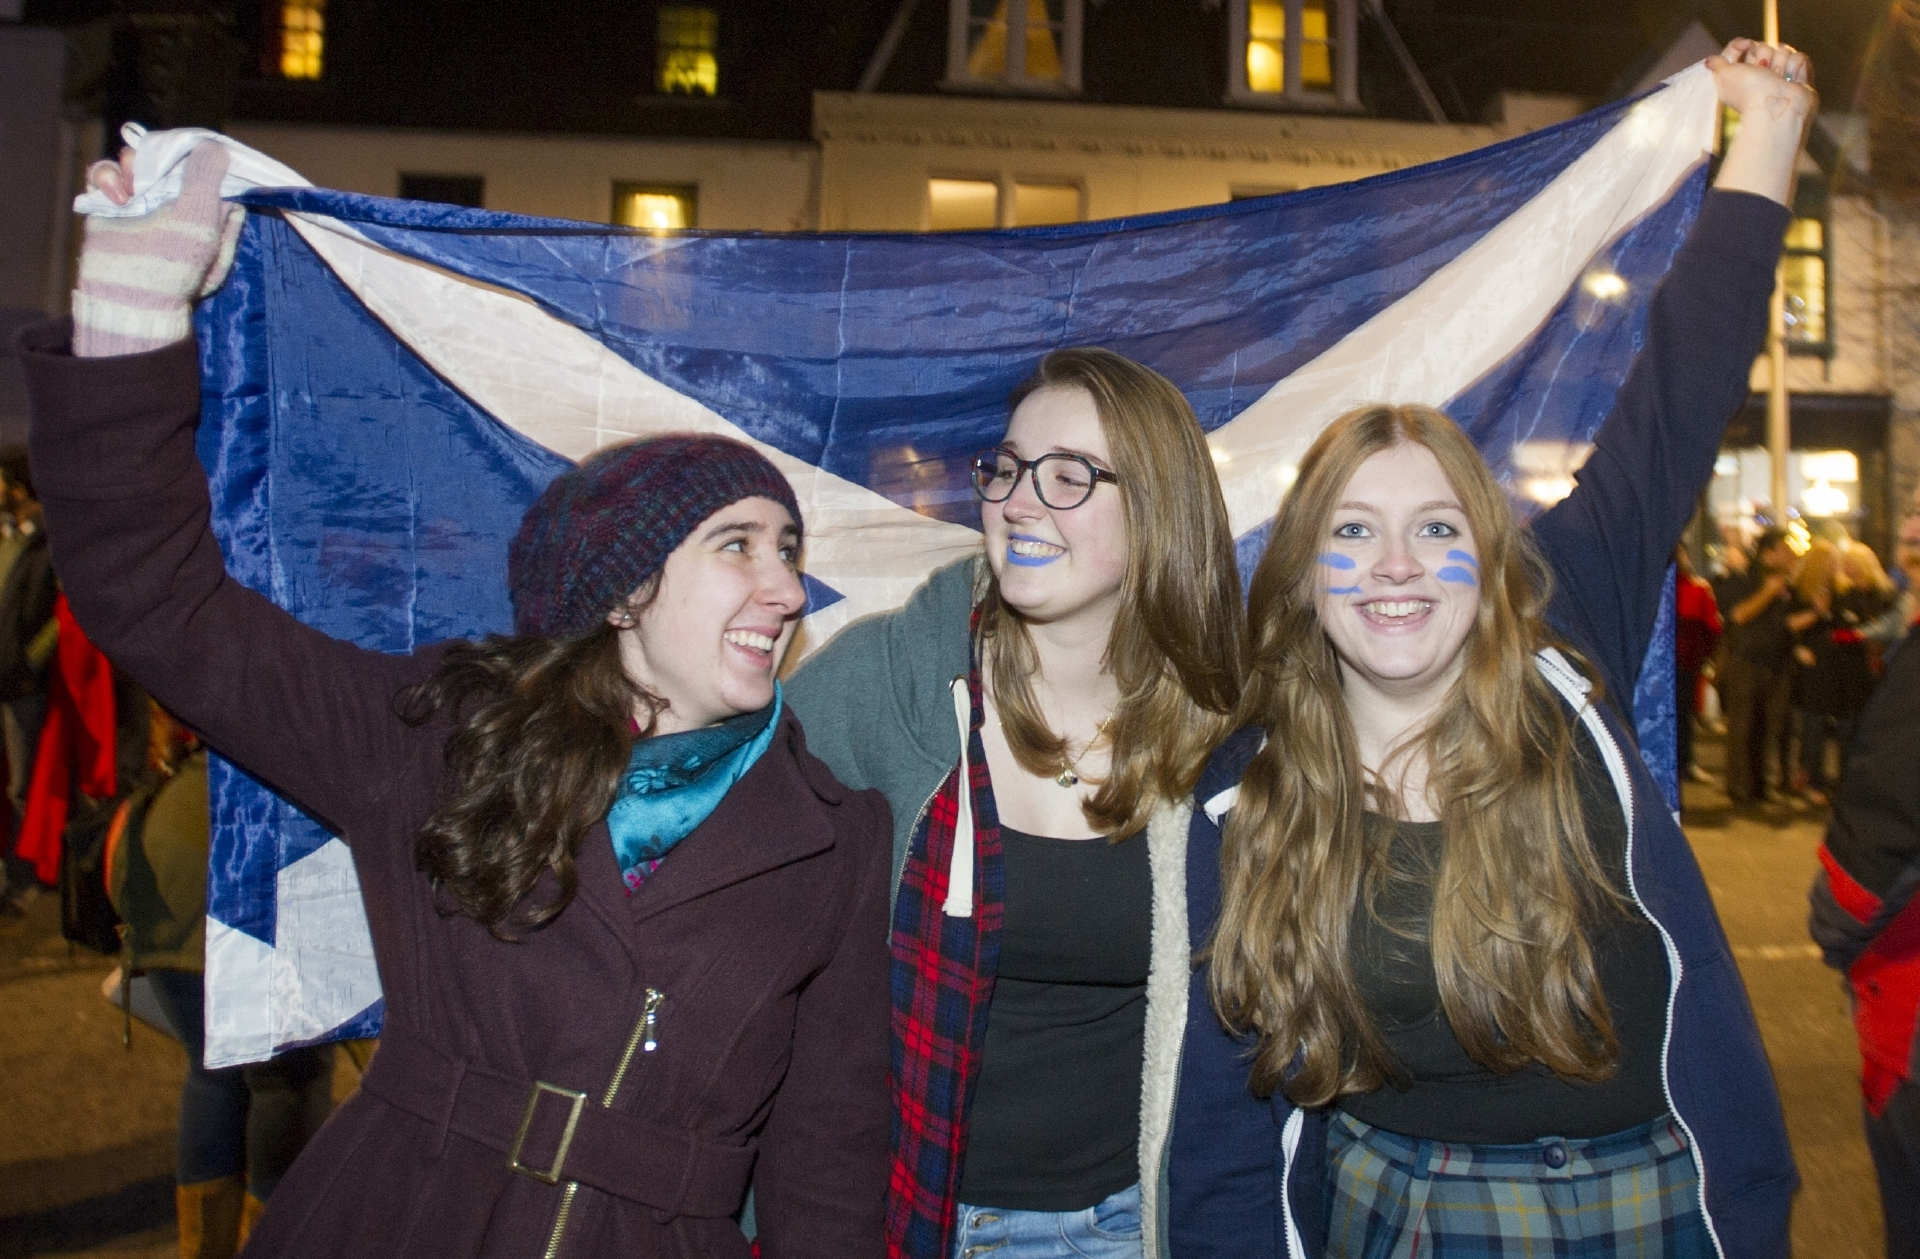 Scenes from a previous St Andrew's Day Celebration